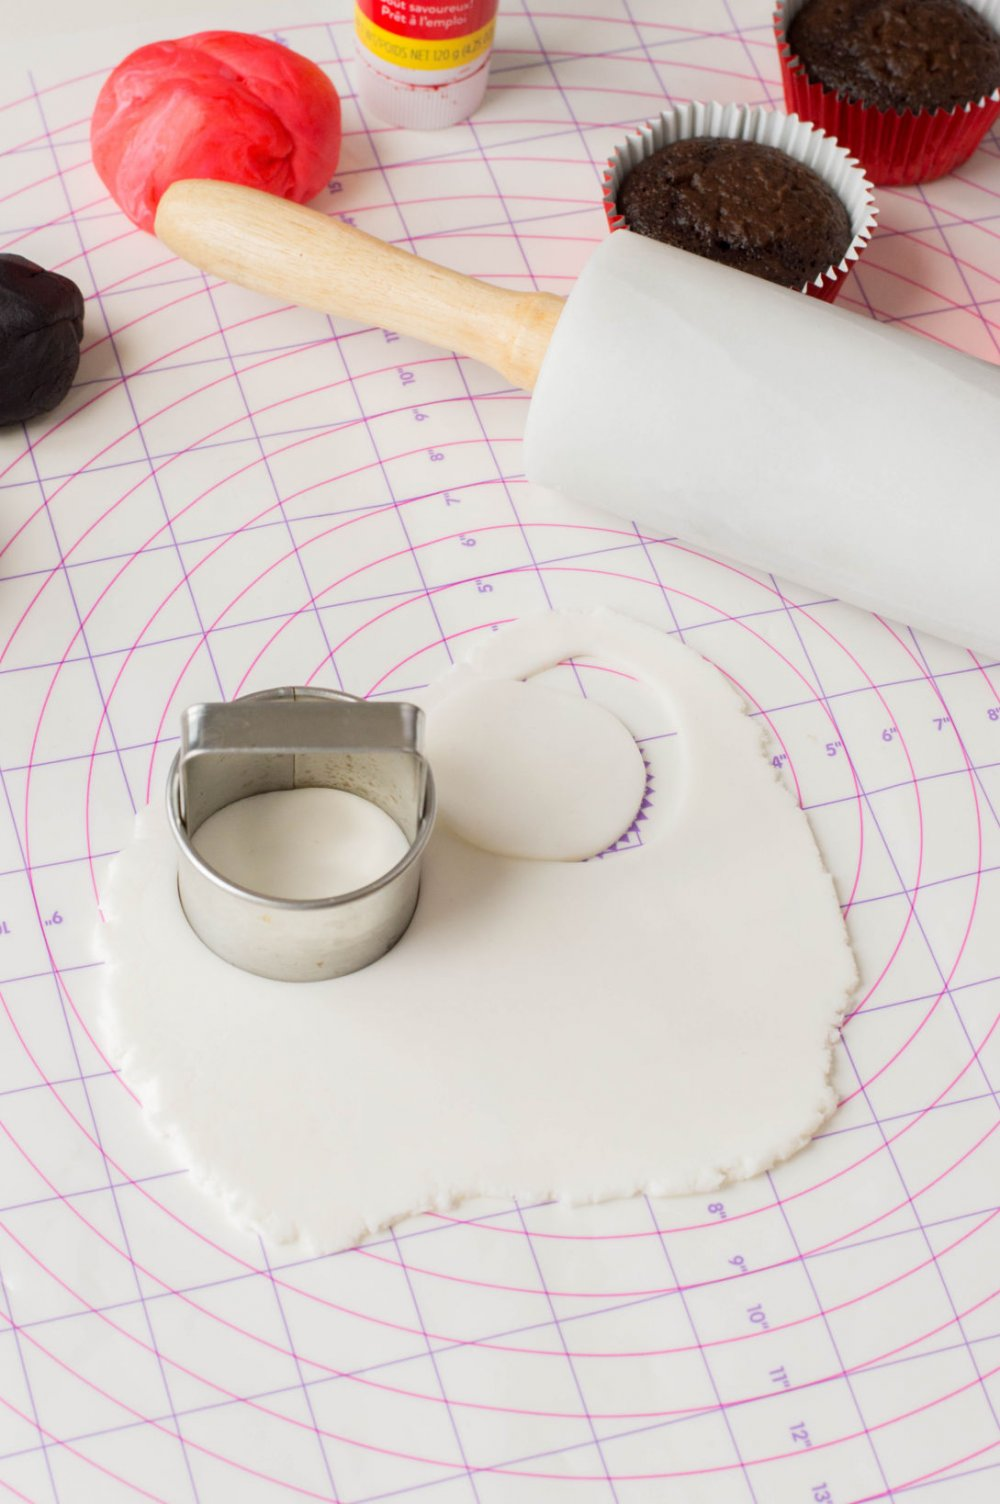 Using a cookie cutter to cut out white fondant